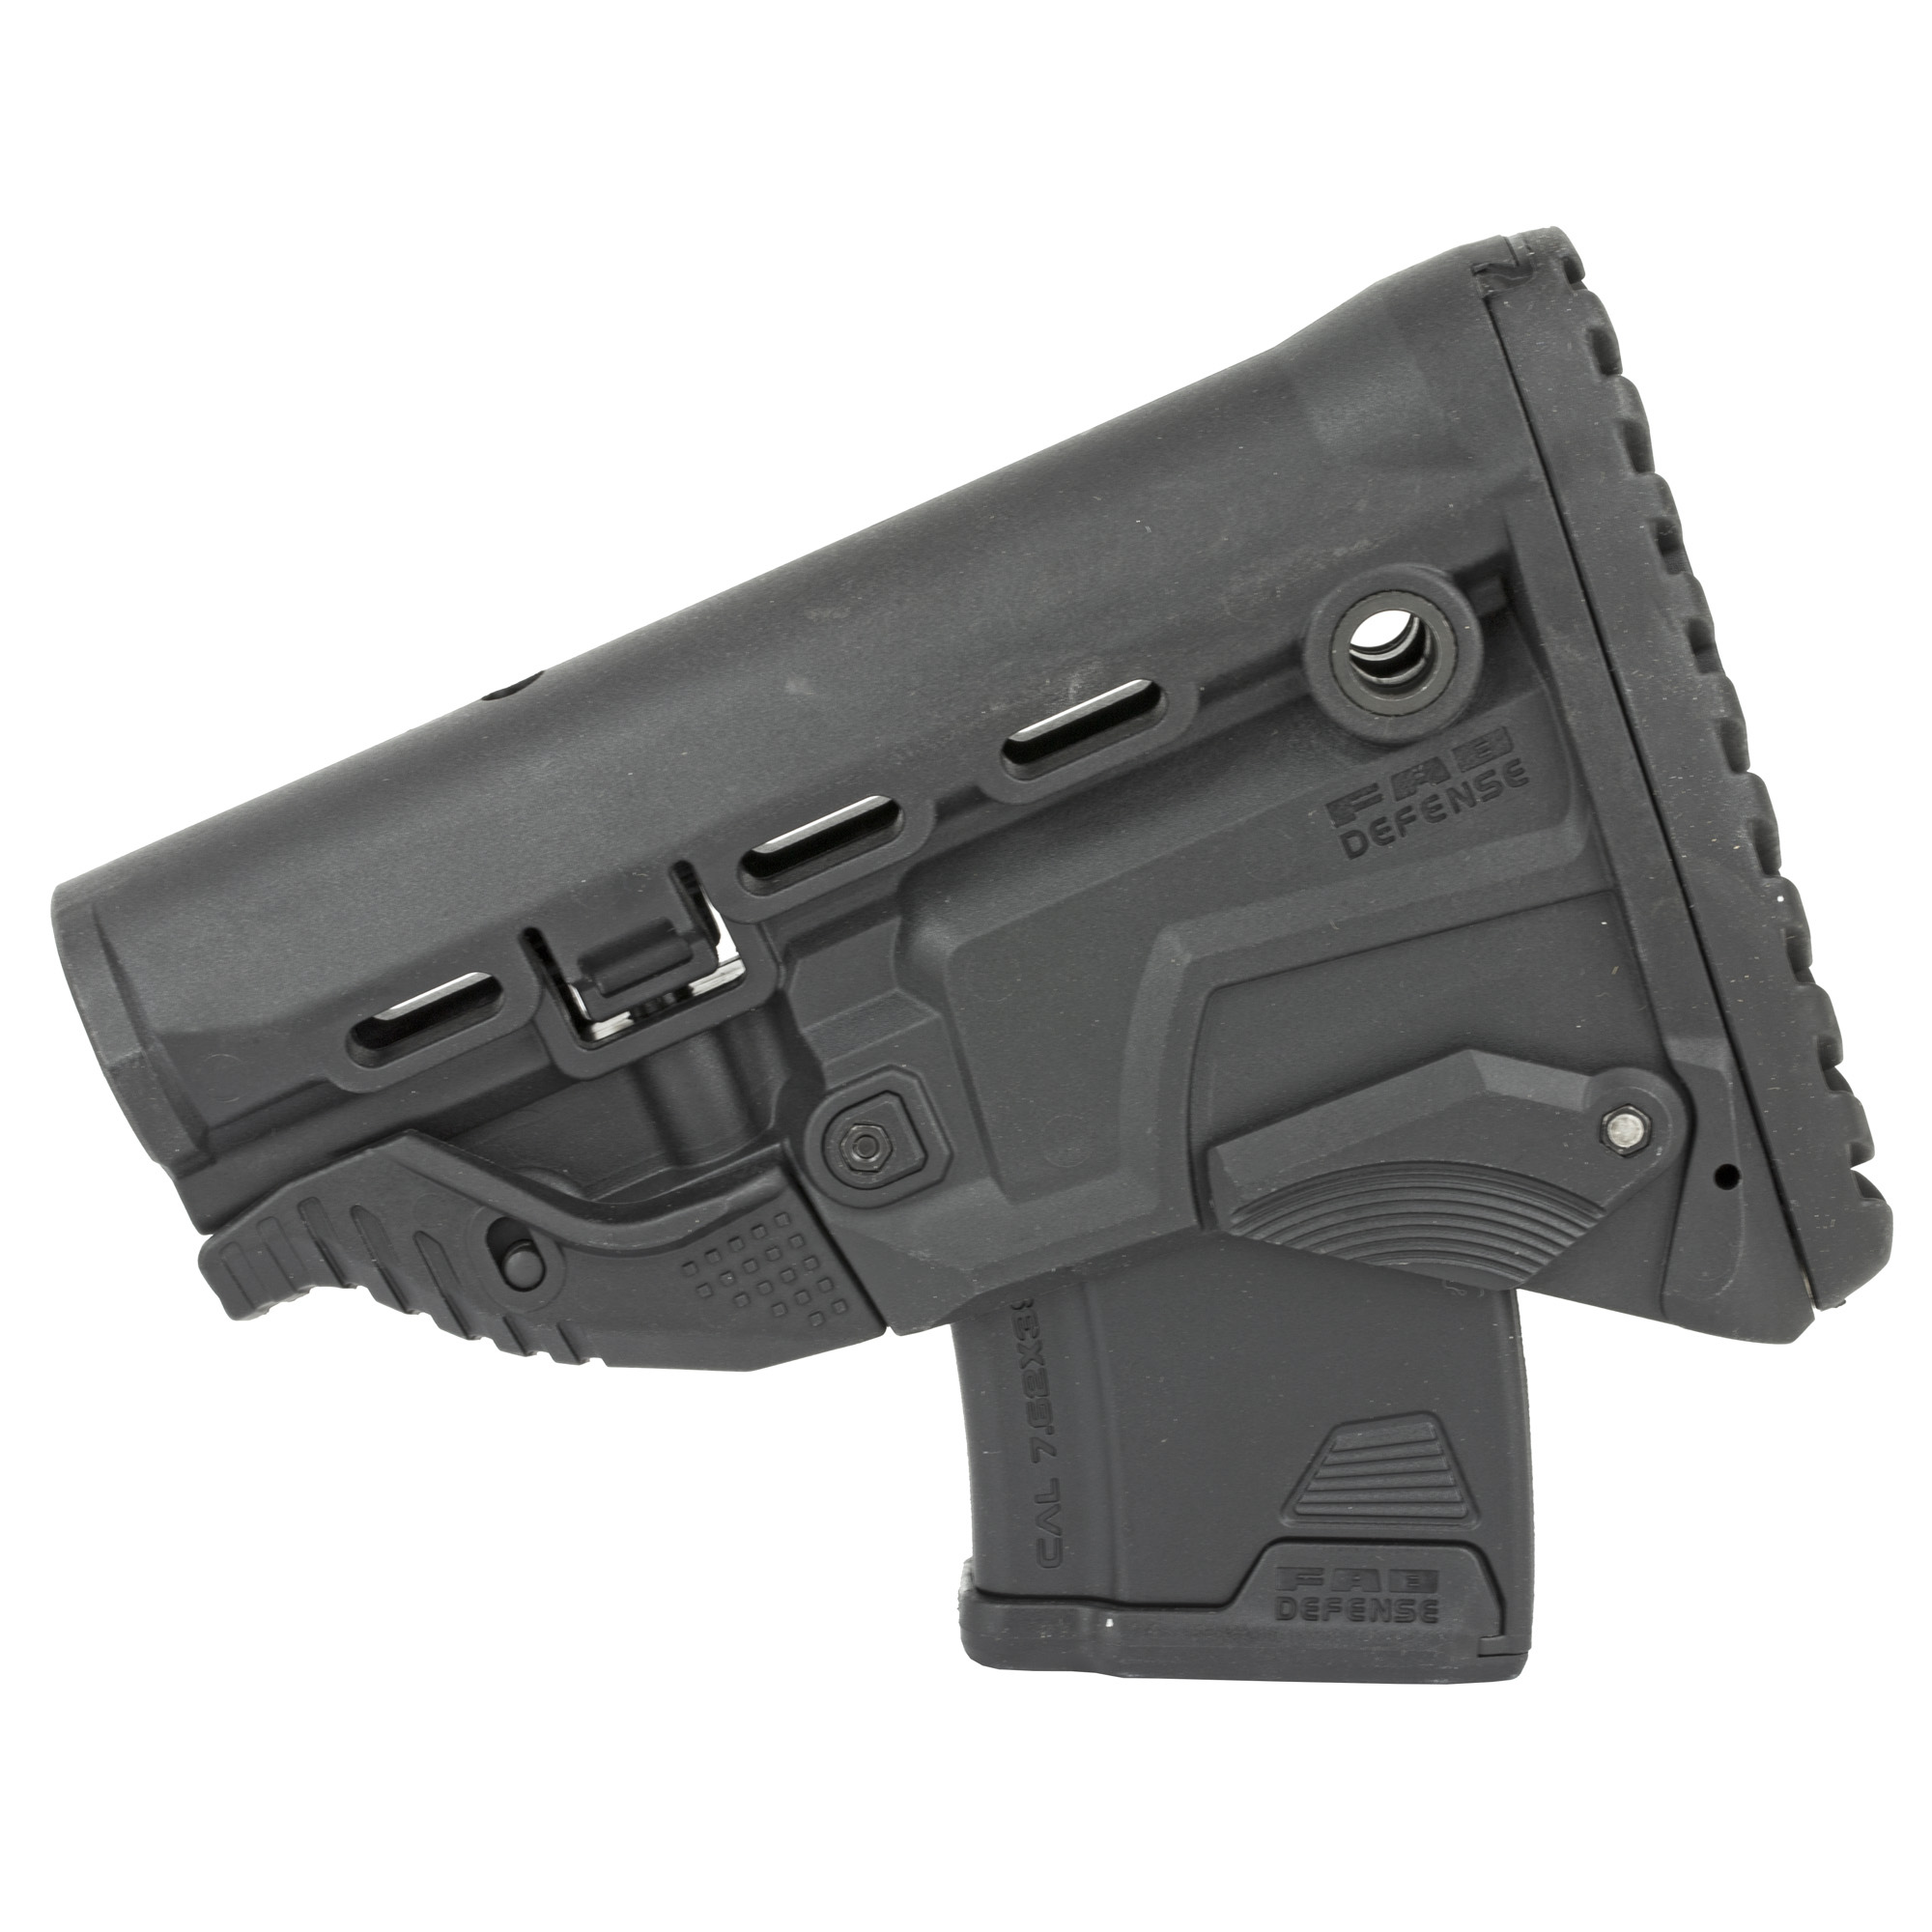 The GK-MAG Survival Buttstock w/built-in mag carrier whether it's your accuracy or numerous target engagements you can depend on your last ten chances with FAB'S Survival Buttstock w/Built-in 10 round Mag Carrier. The GK-MAG incorporates an inconspicuous/sleek AK Magazine Carrier.